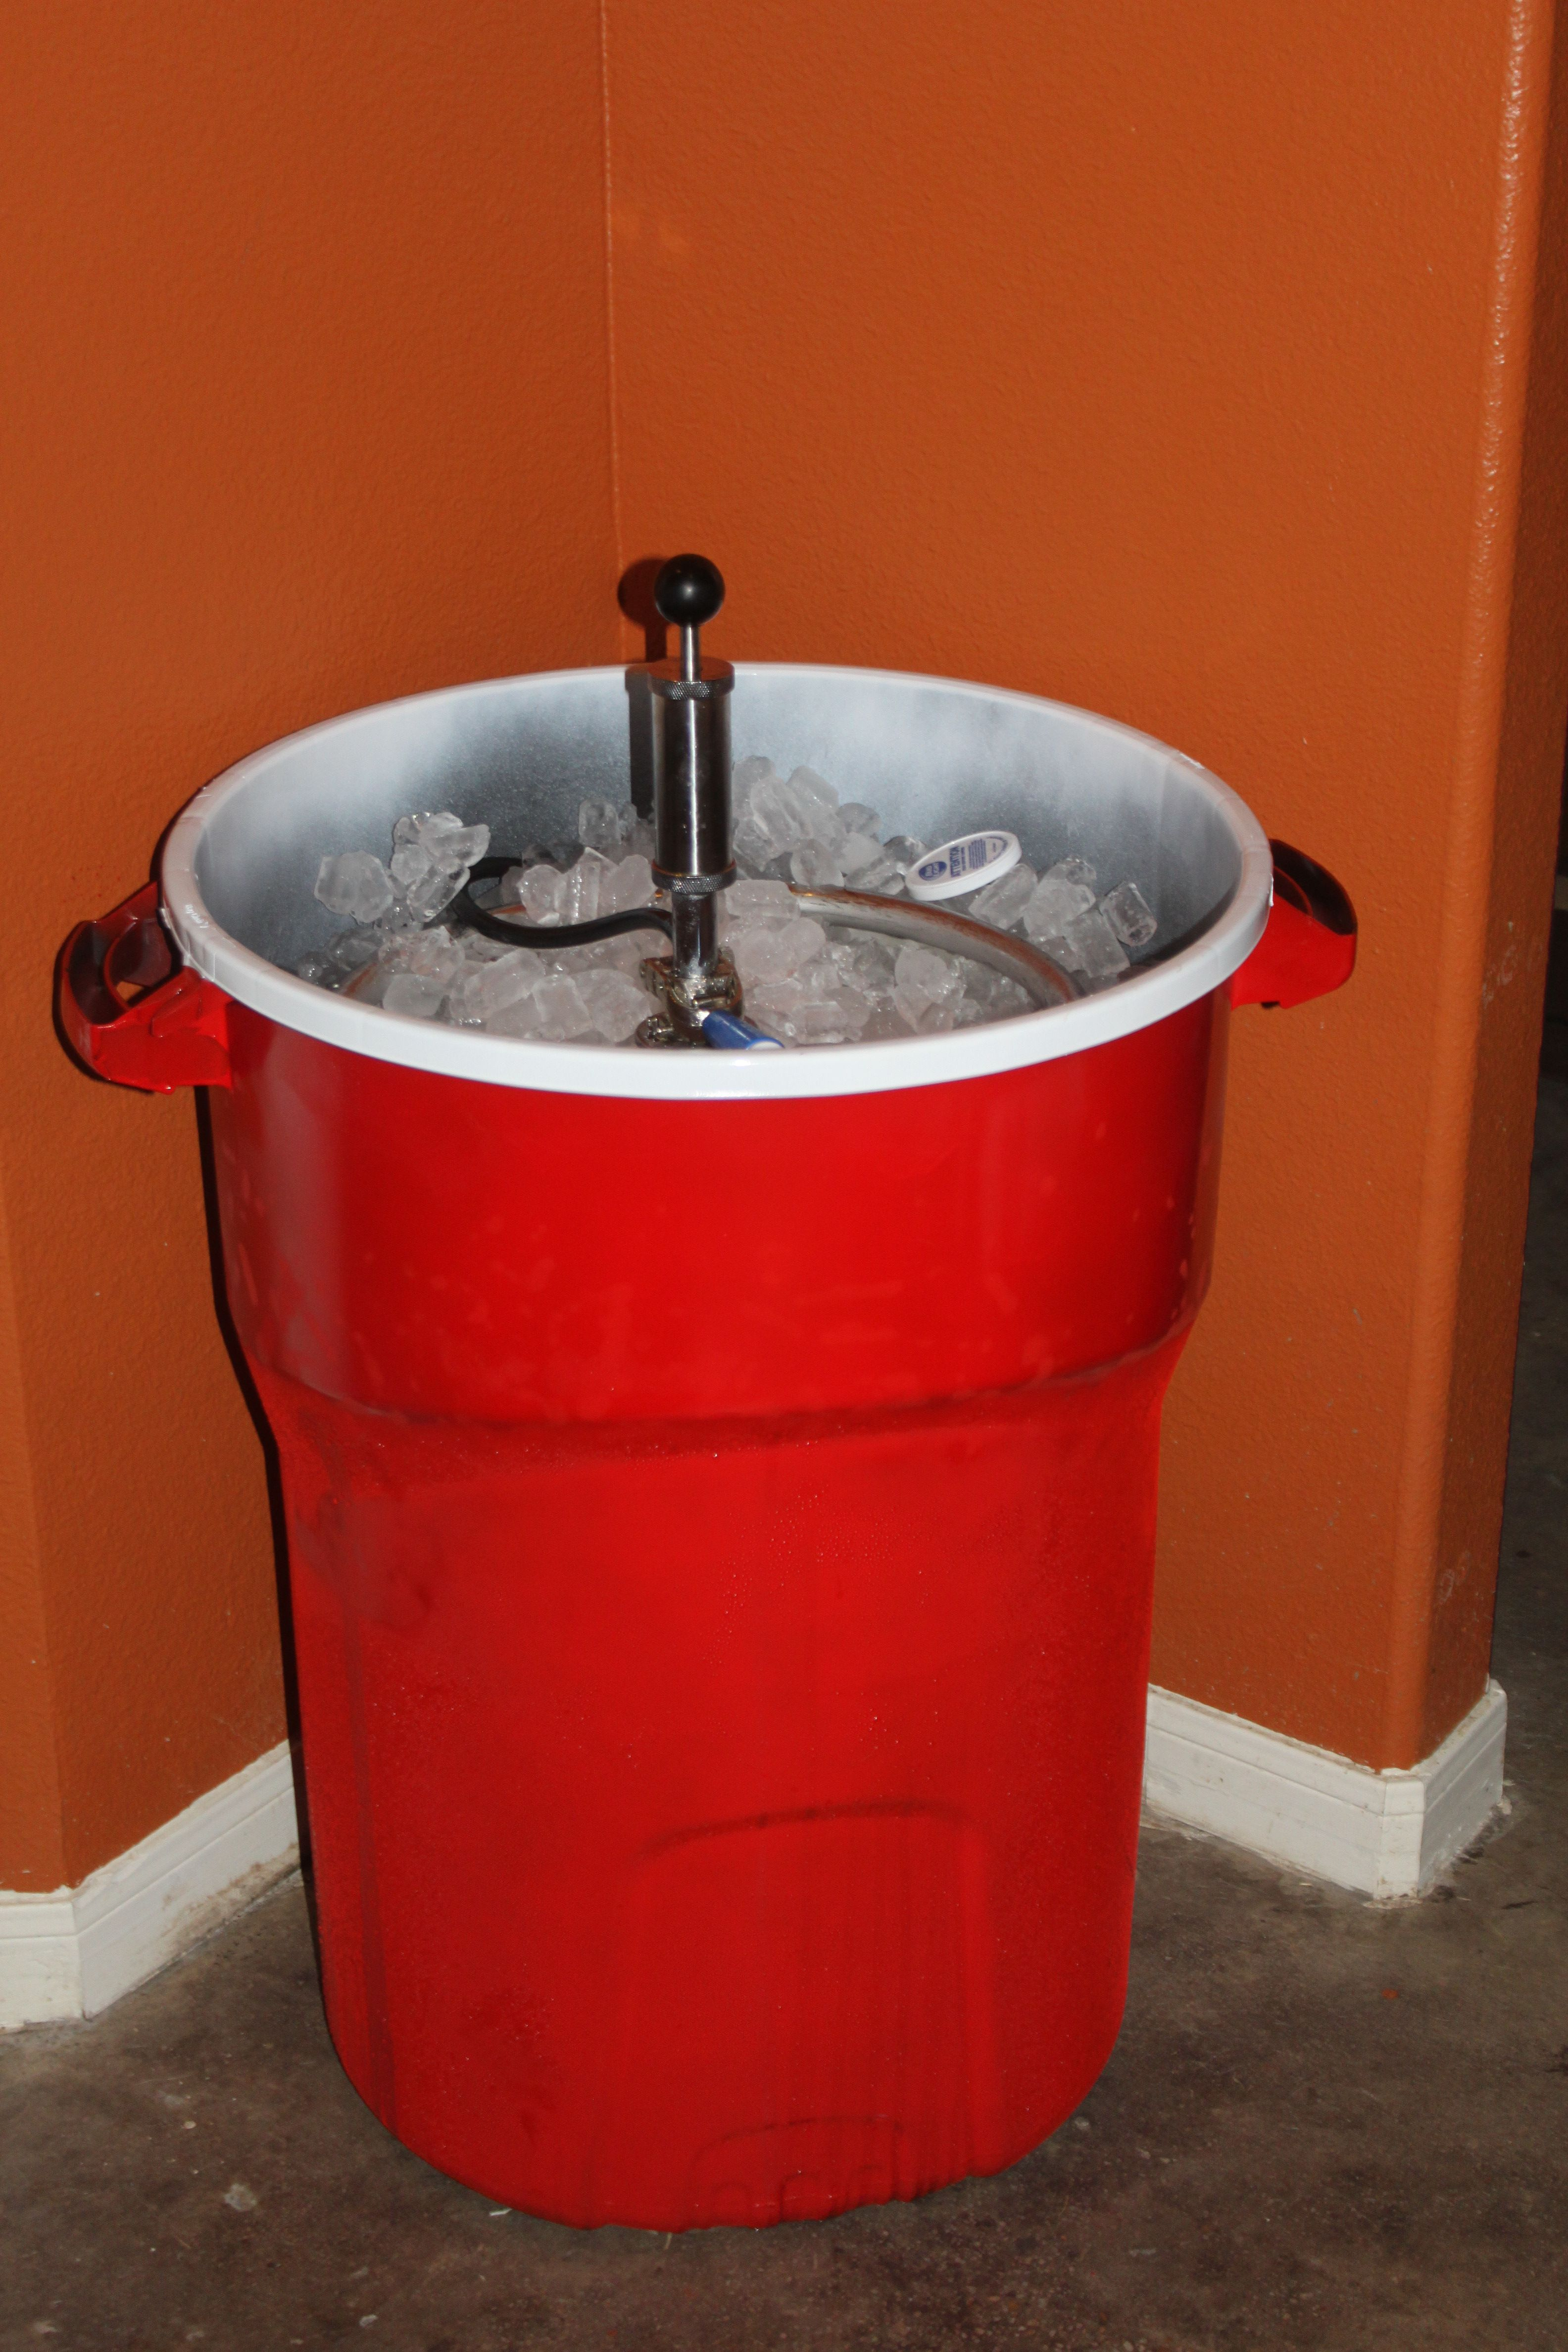 Red Trash Can Beer Pong Solo Cup Rosewood Round Lor Rose On 13 Gallon